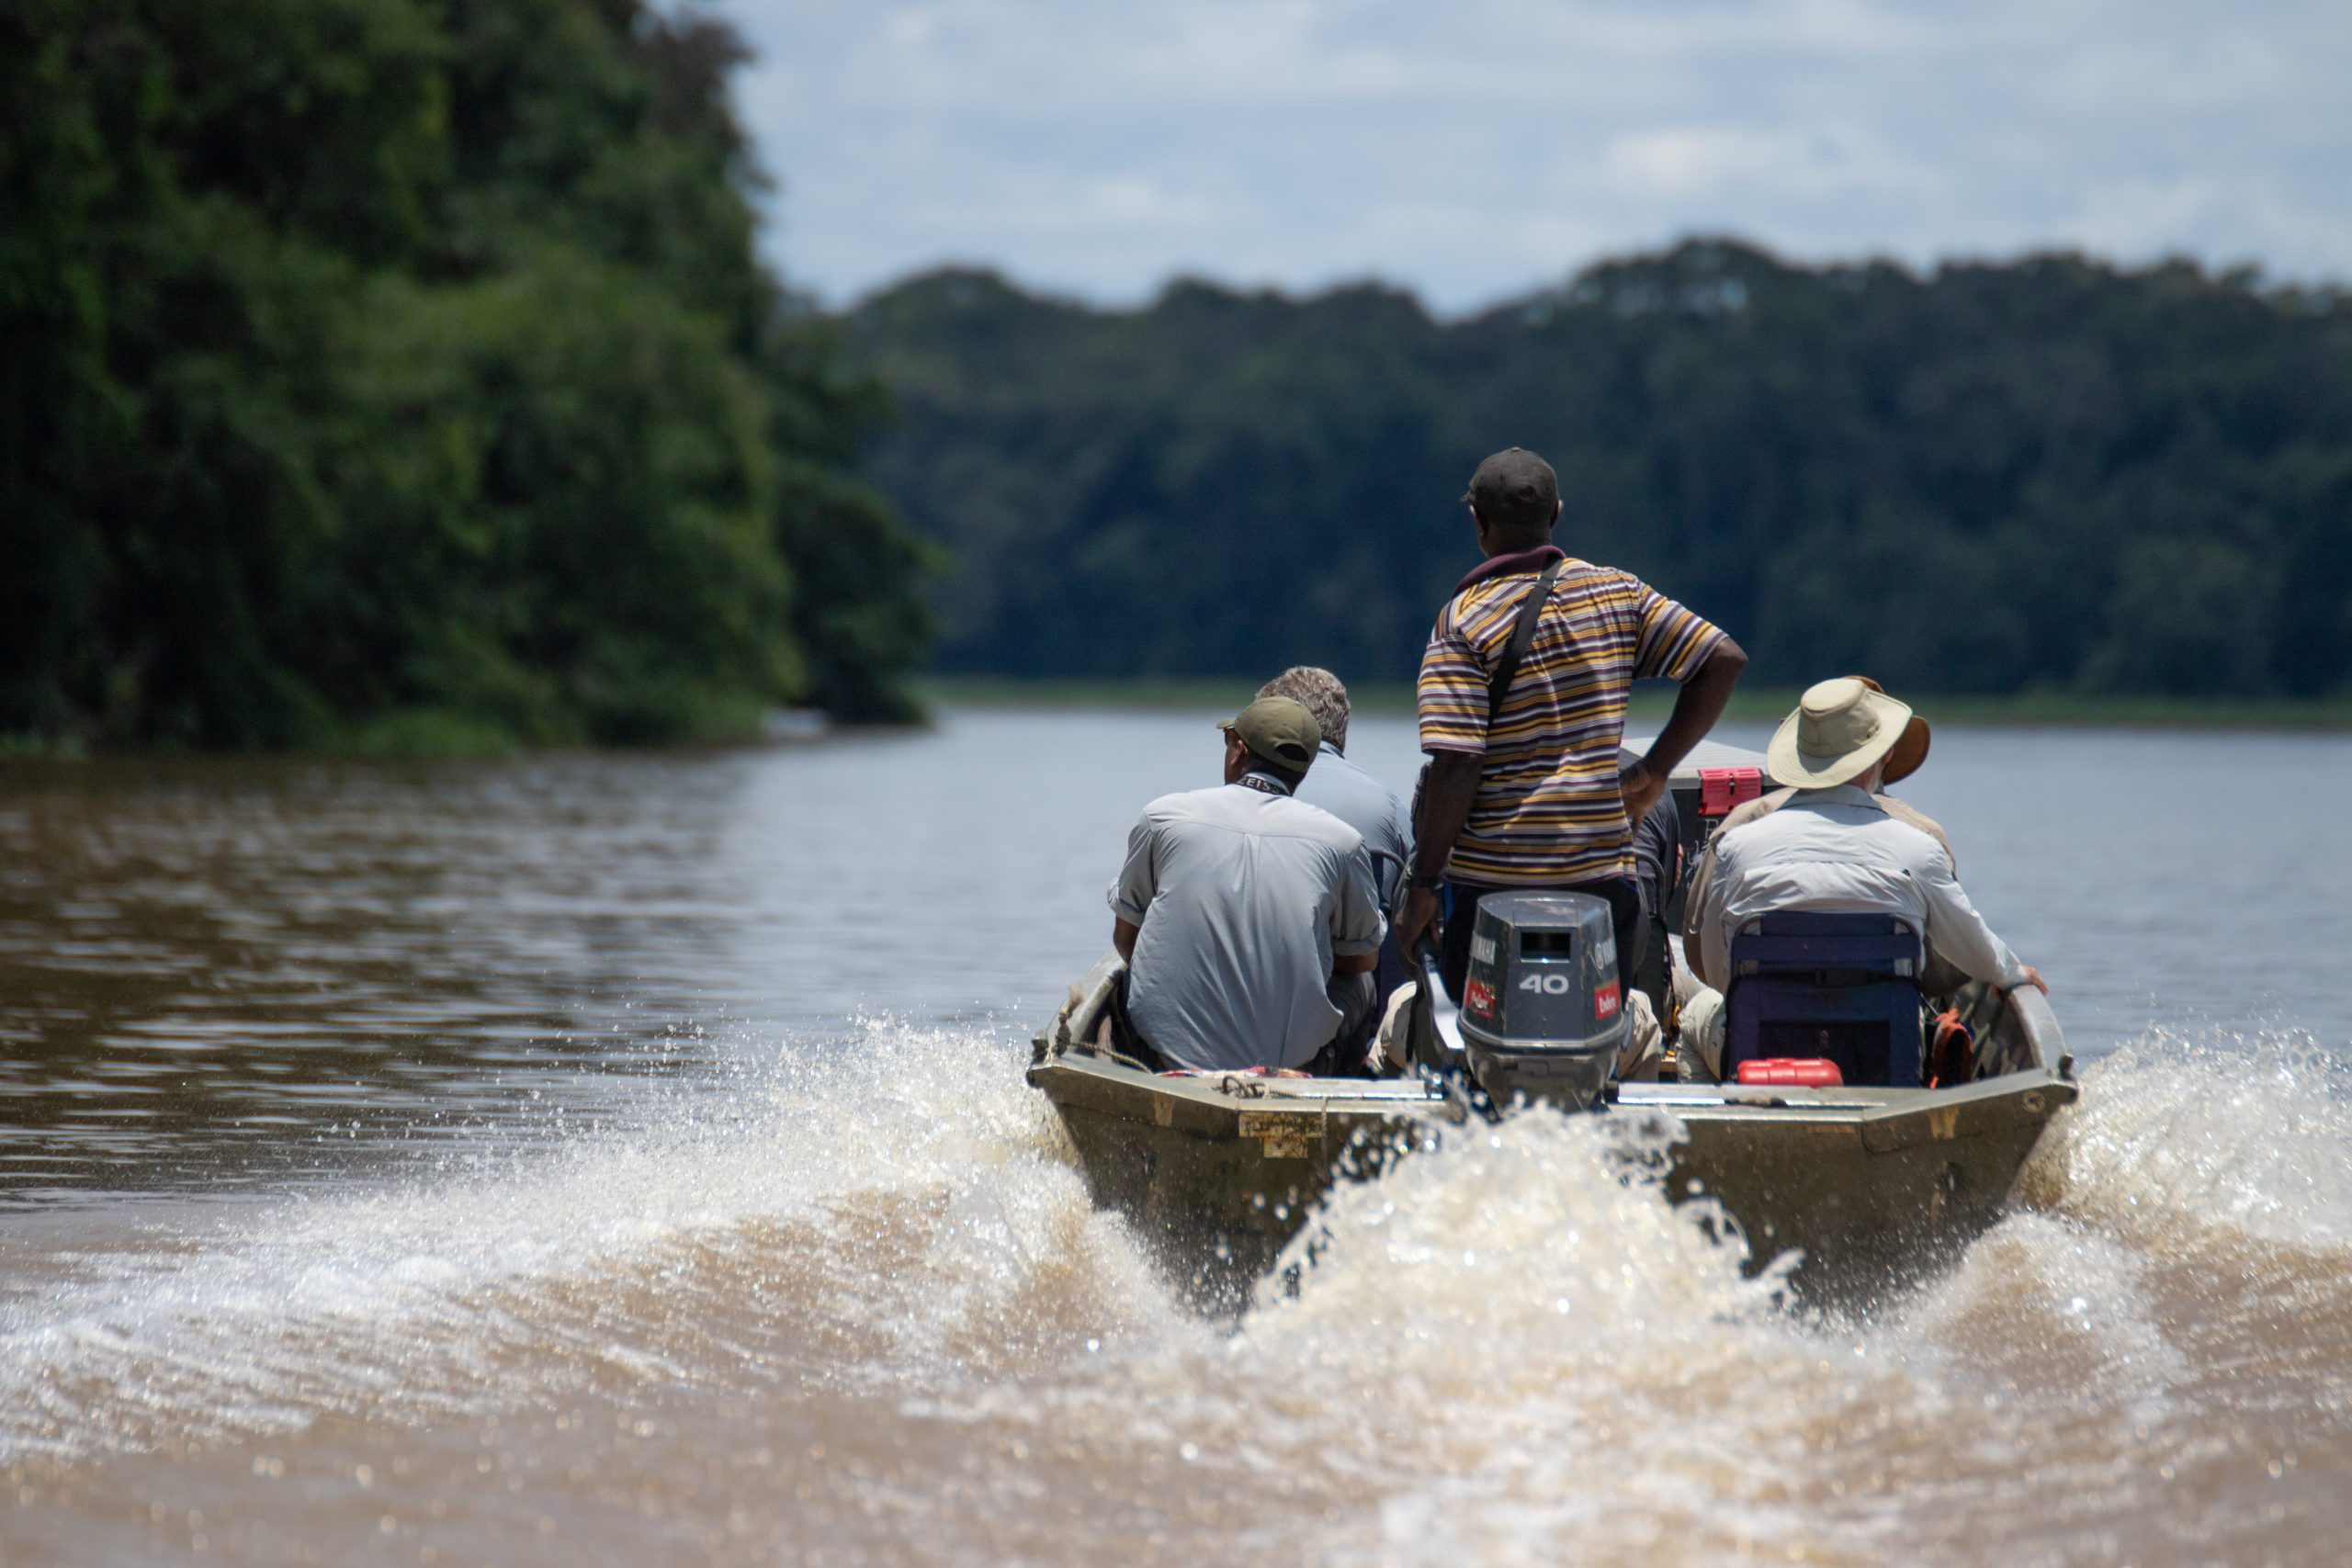 Sangha Lodge Congo Basin safari Odzala guests and guide cruising down river in small motor boat